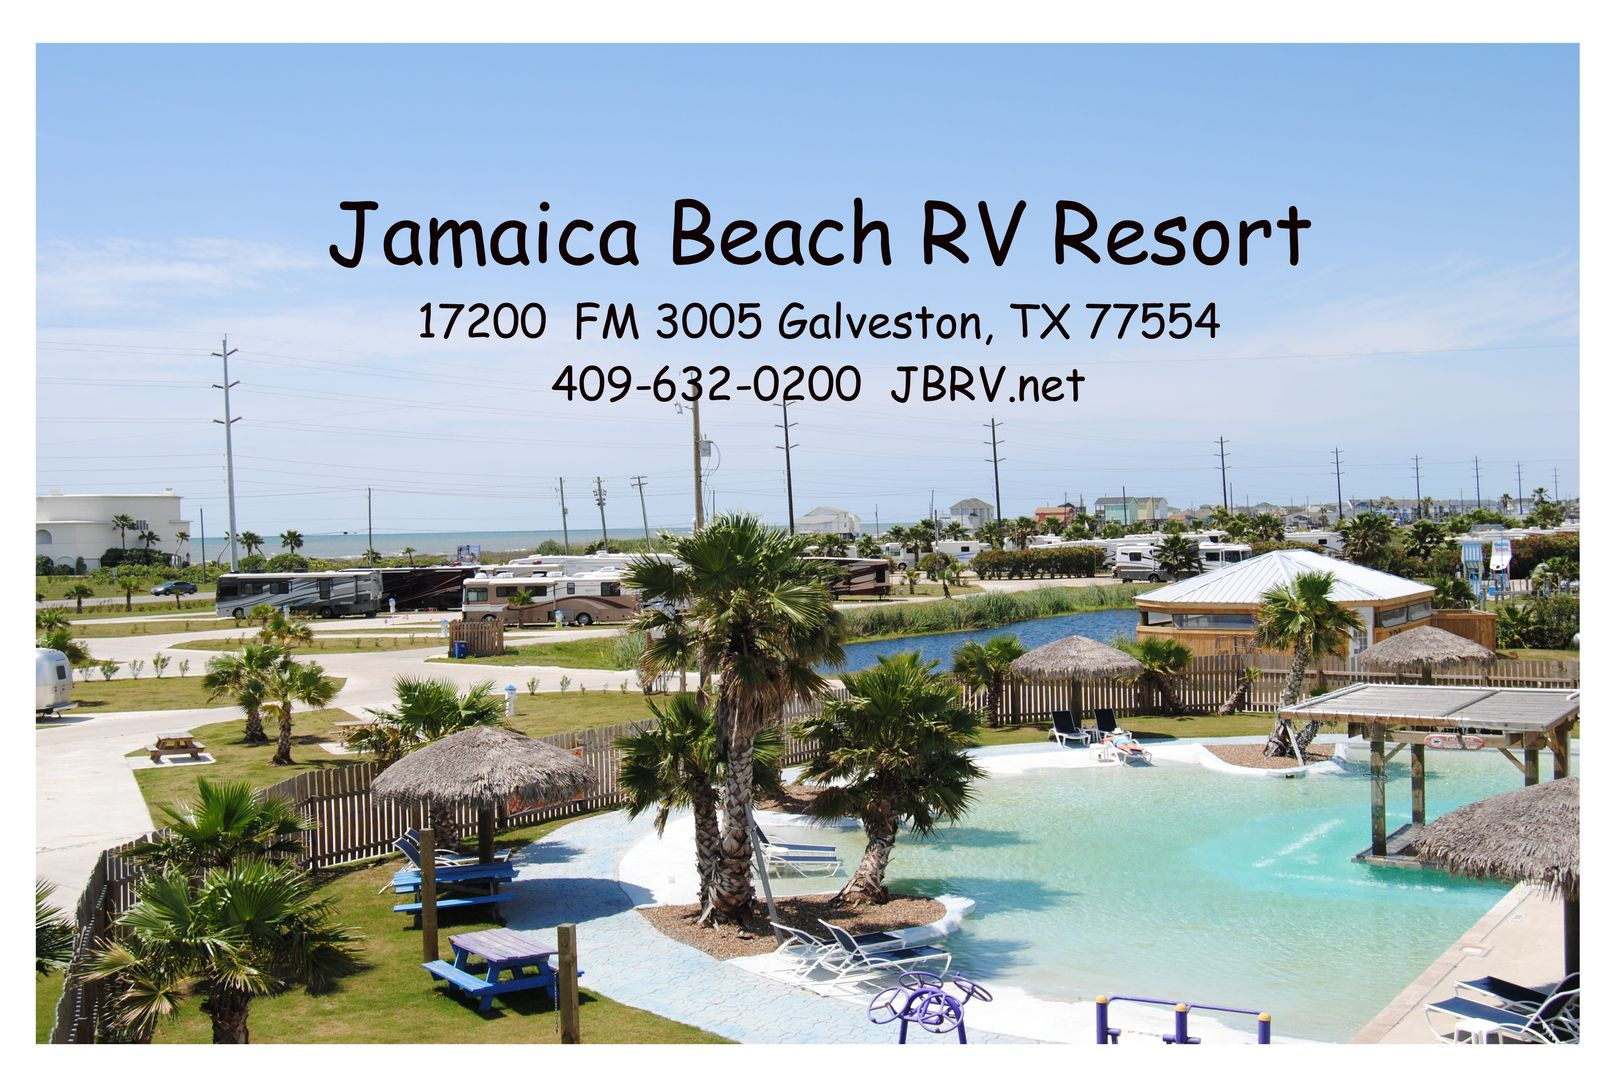 Jamaica Beach Rv Resort In Galveston Texas Park Map Camping At The Pinterest Resorts Parks And Beaches